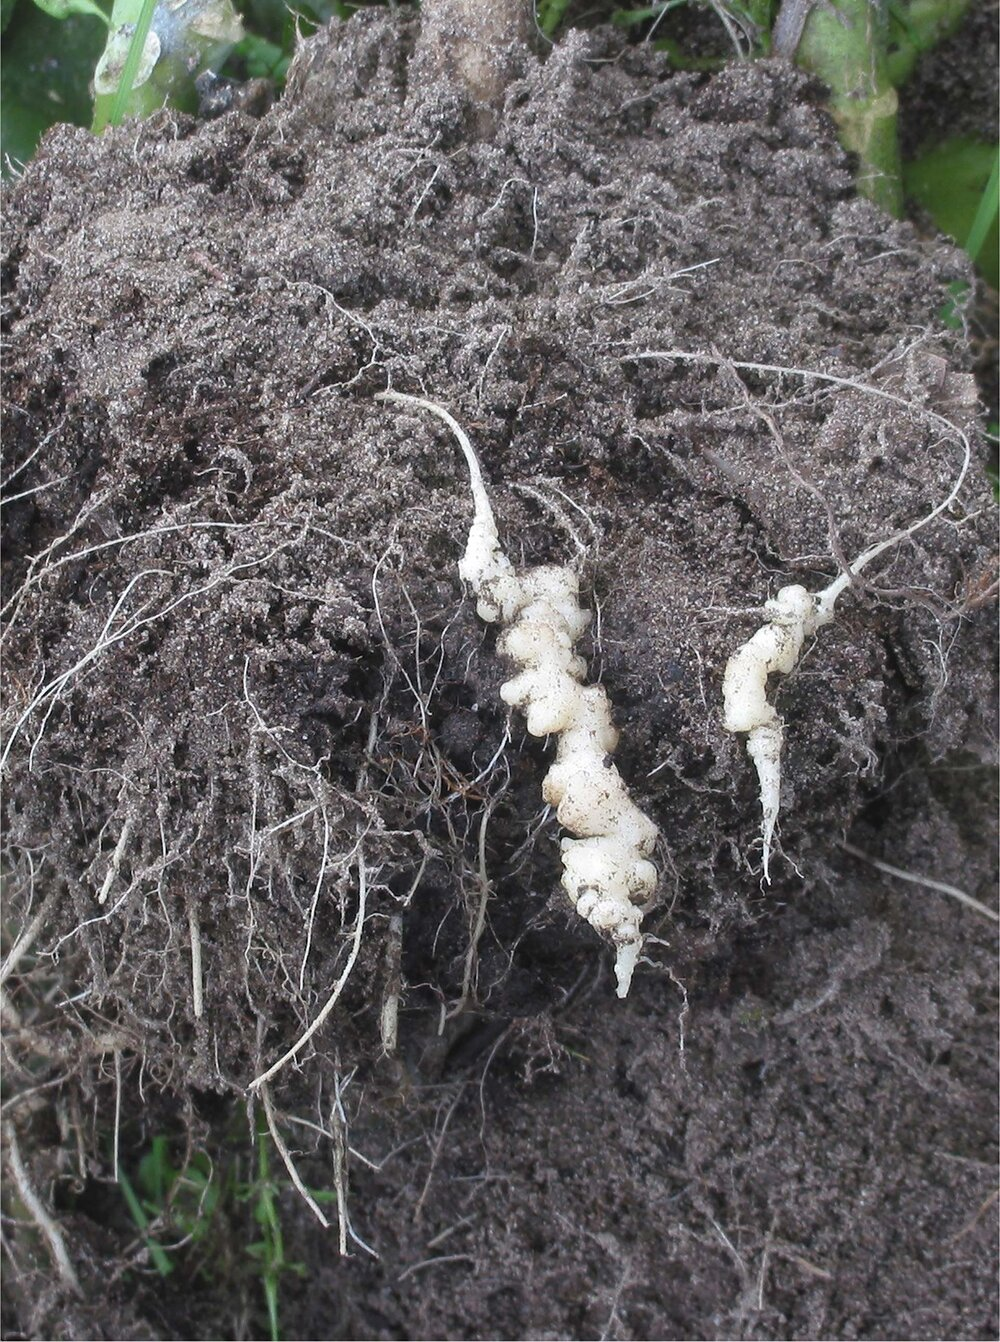 See the swollen roots that look different from the normal fibrous roots on this cauliflower afflicted with clubroot.    Image source